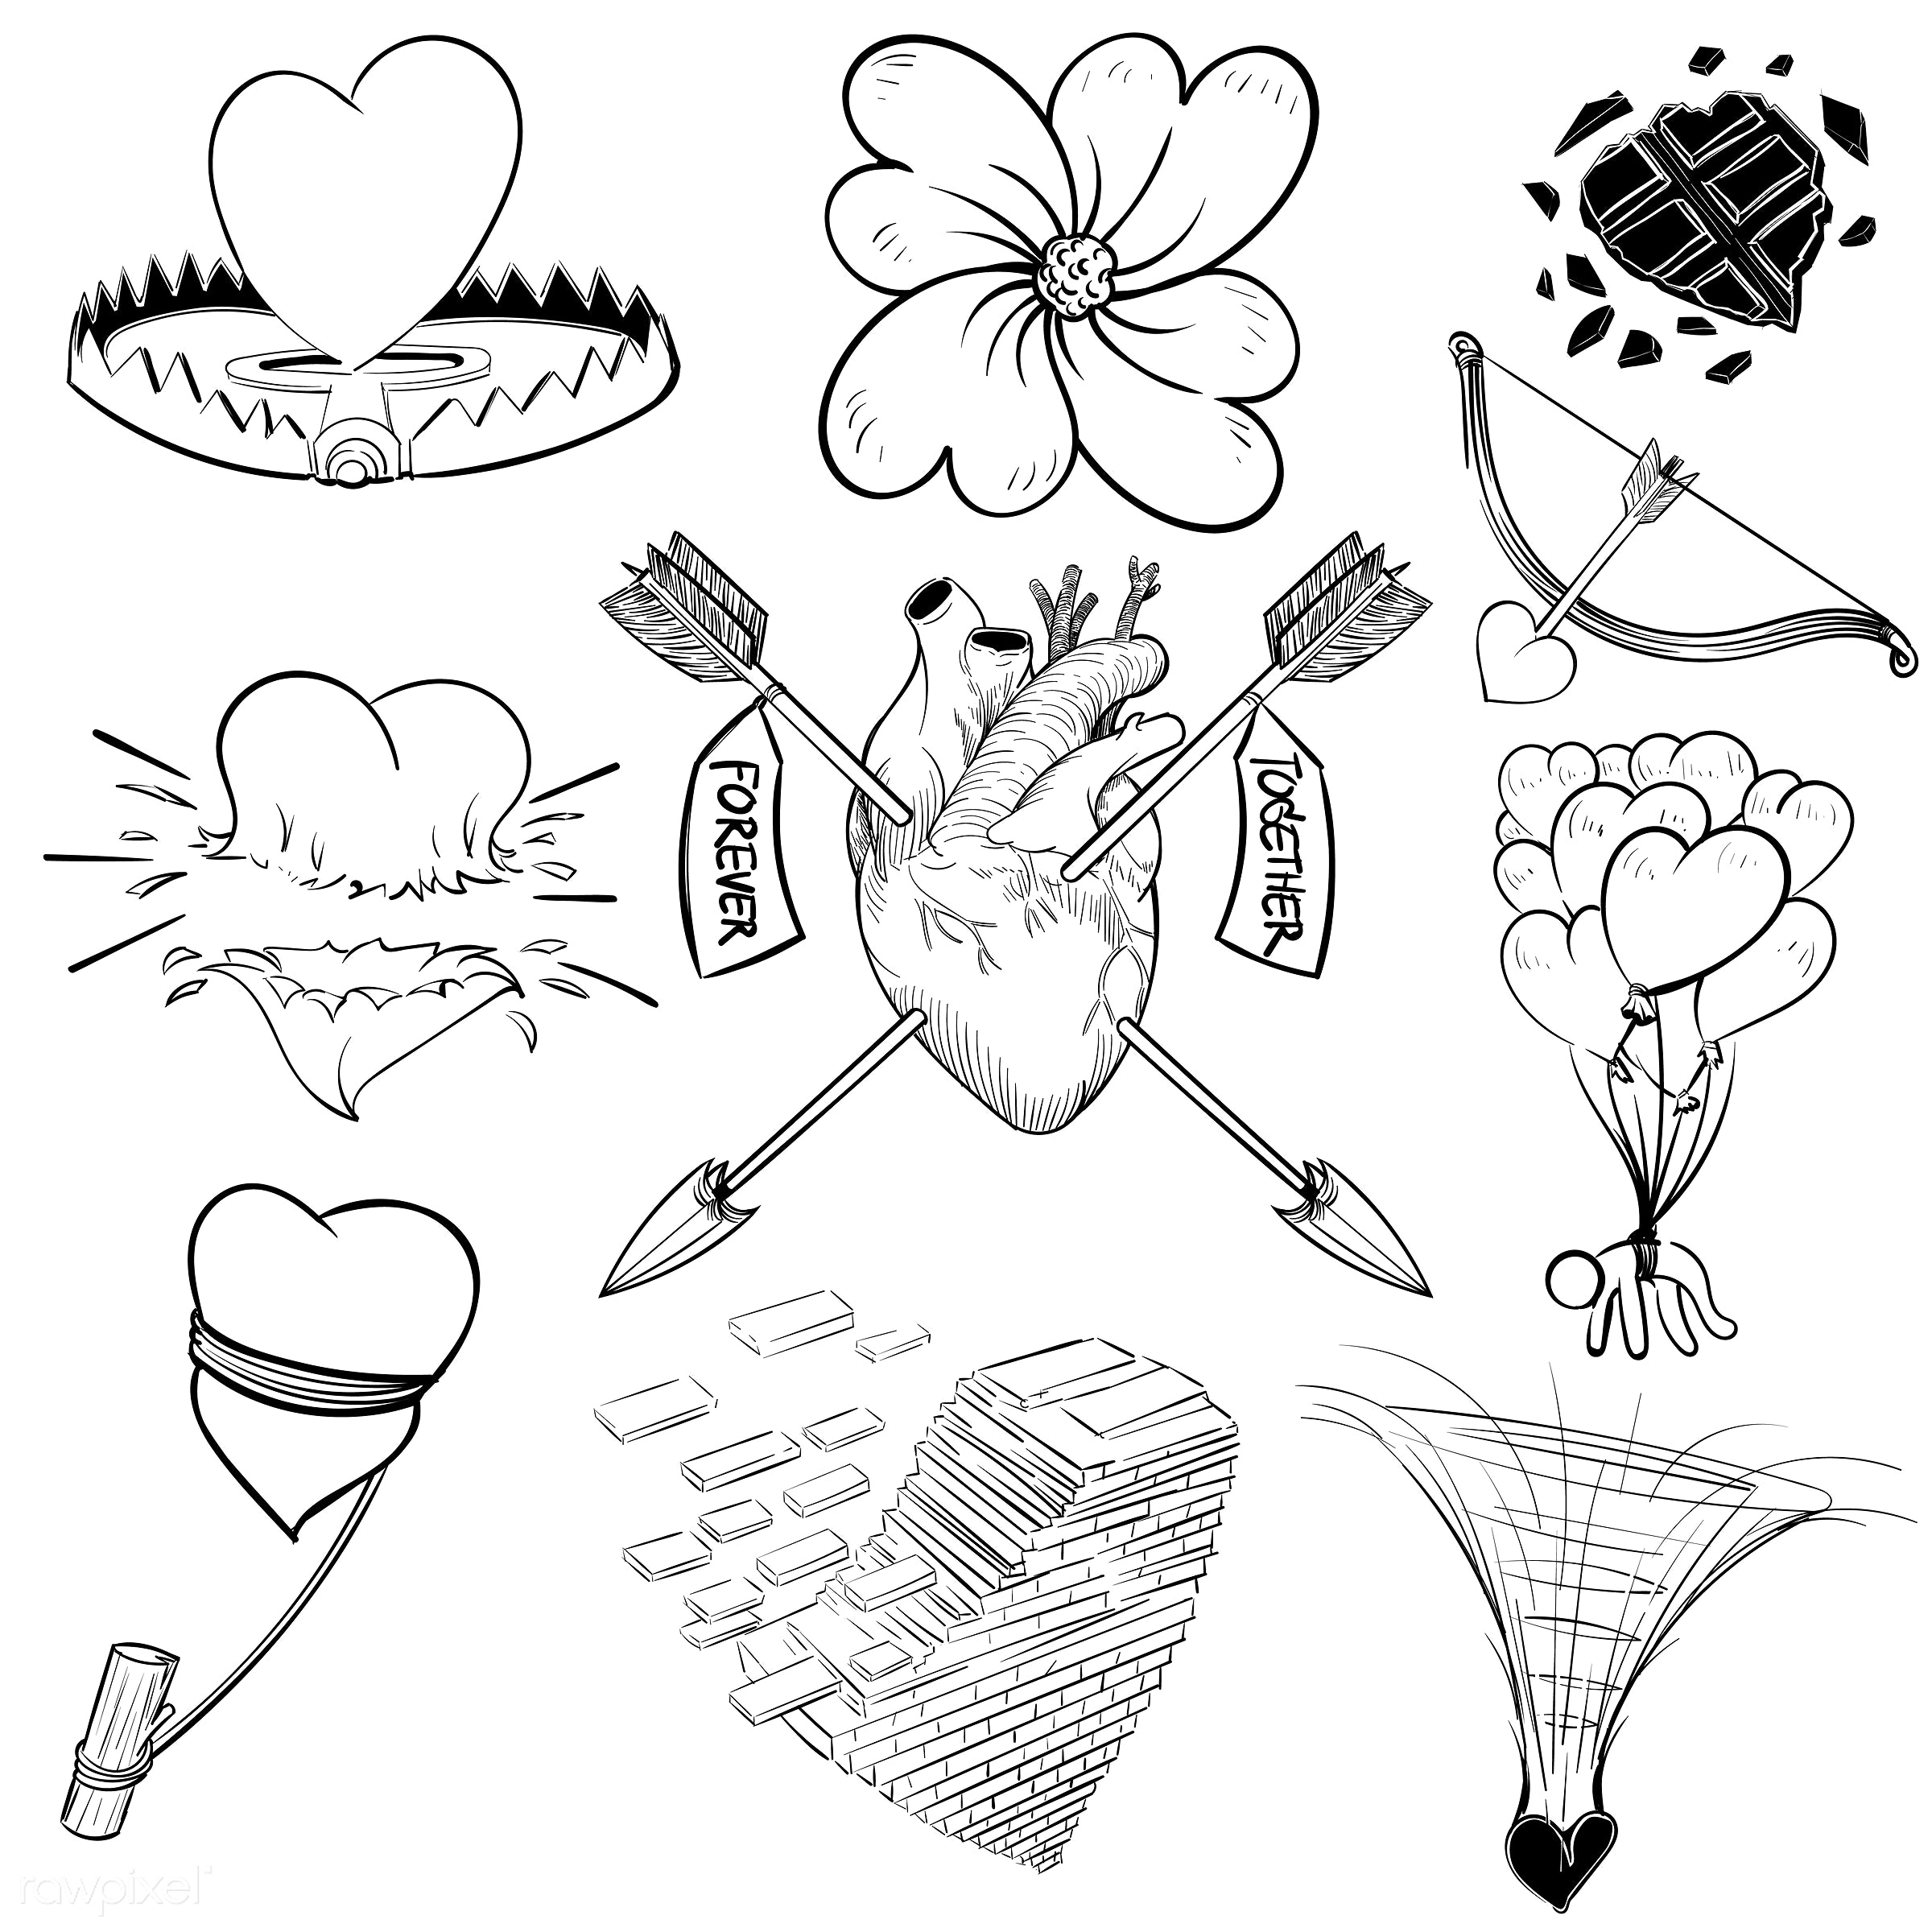 Hand drawing illustration set of love - art, artwork, cares, collection, couple, creative, creativity, design, draw, drawing...